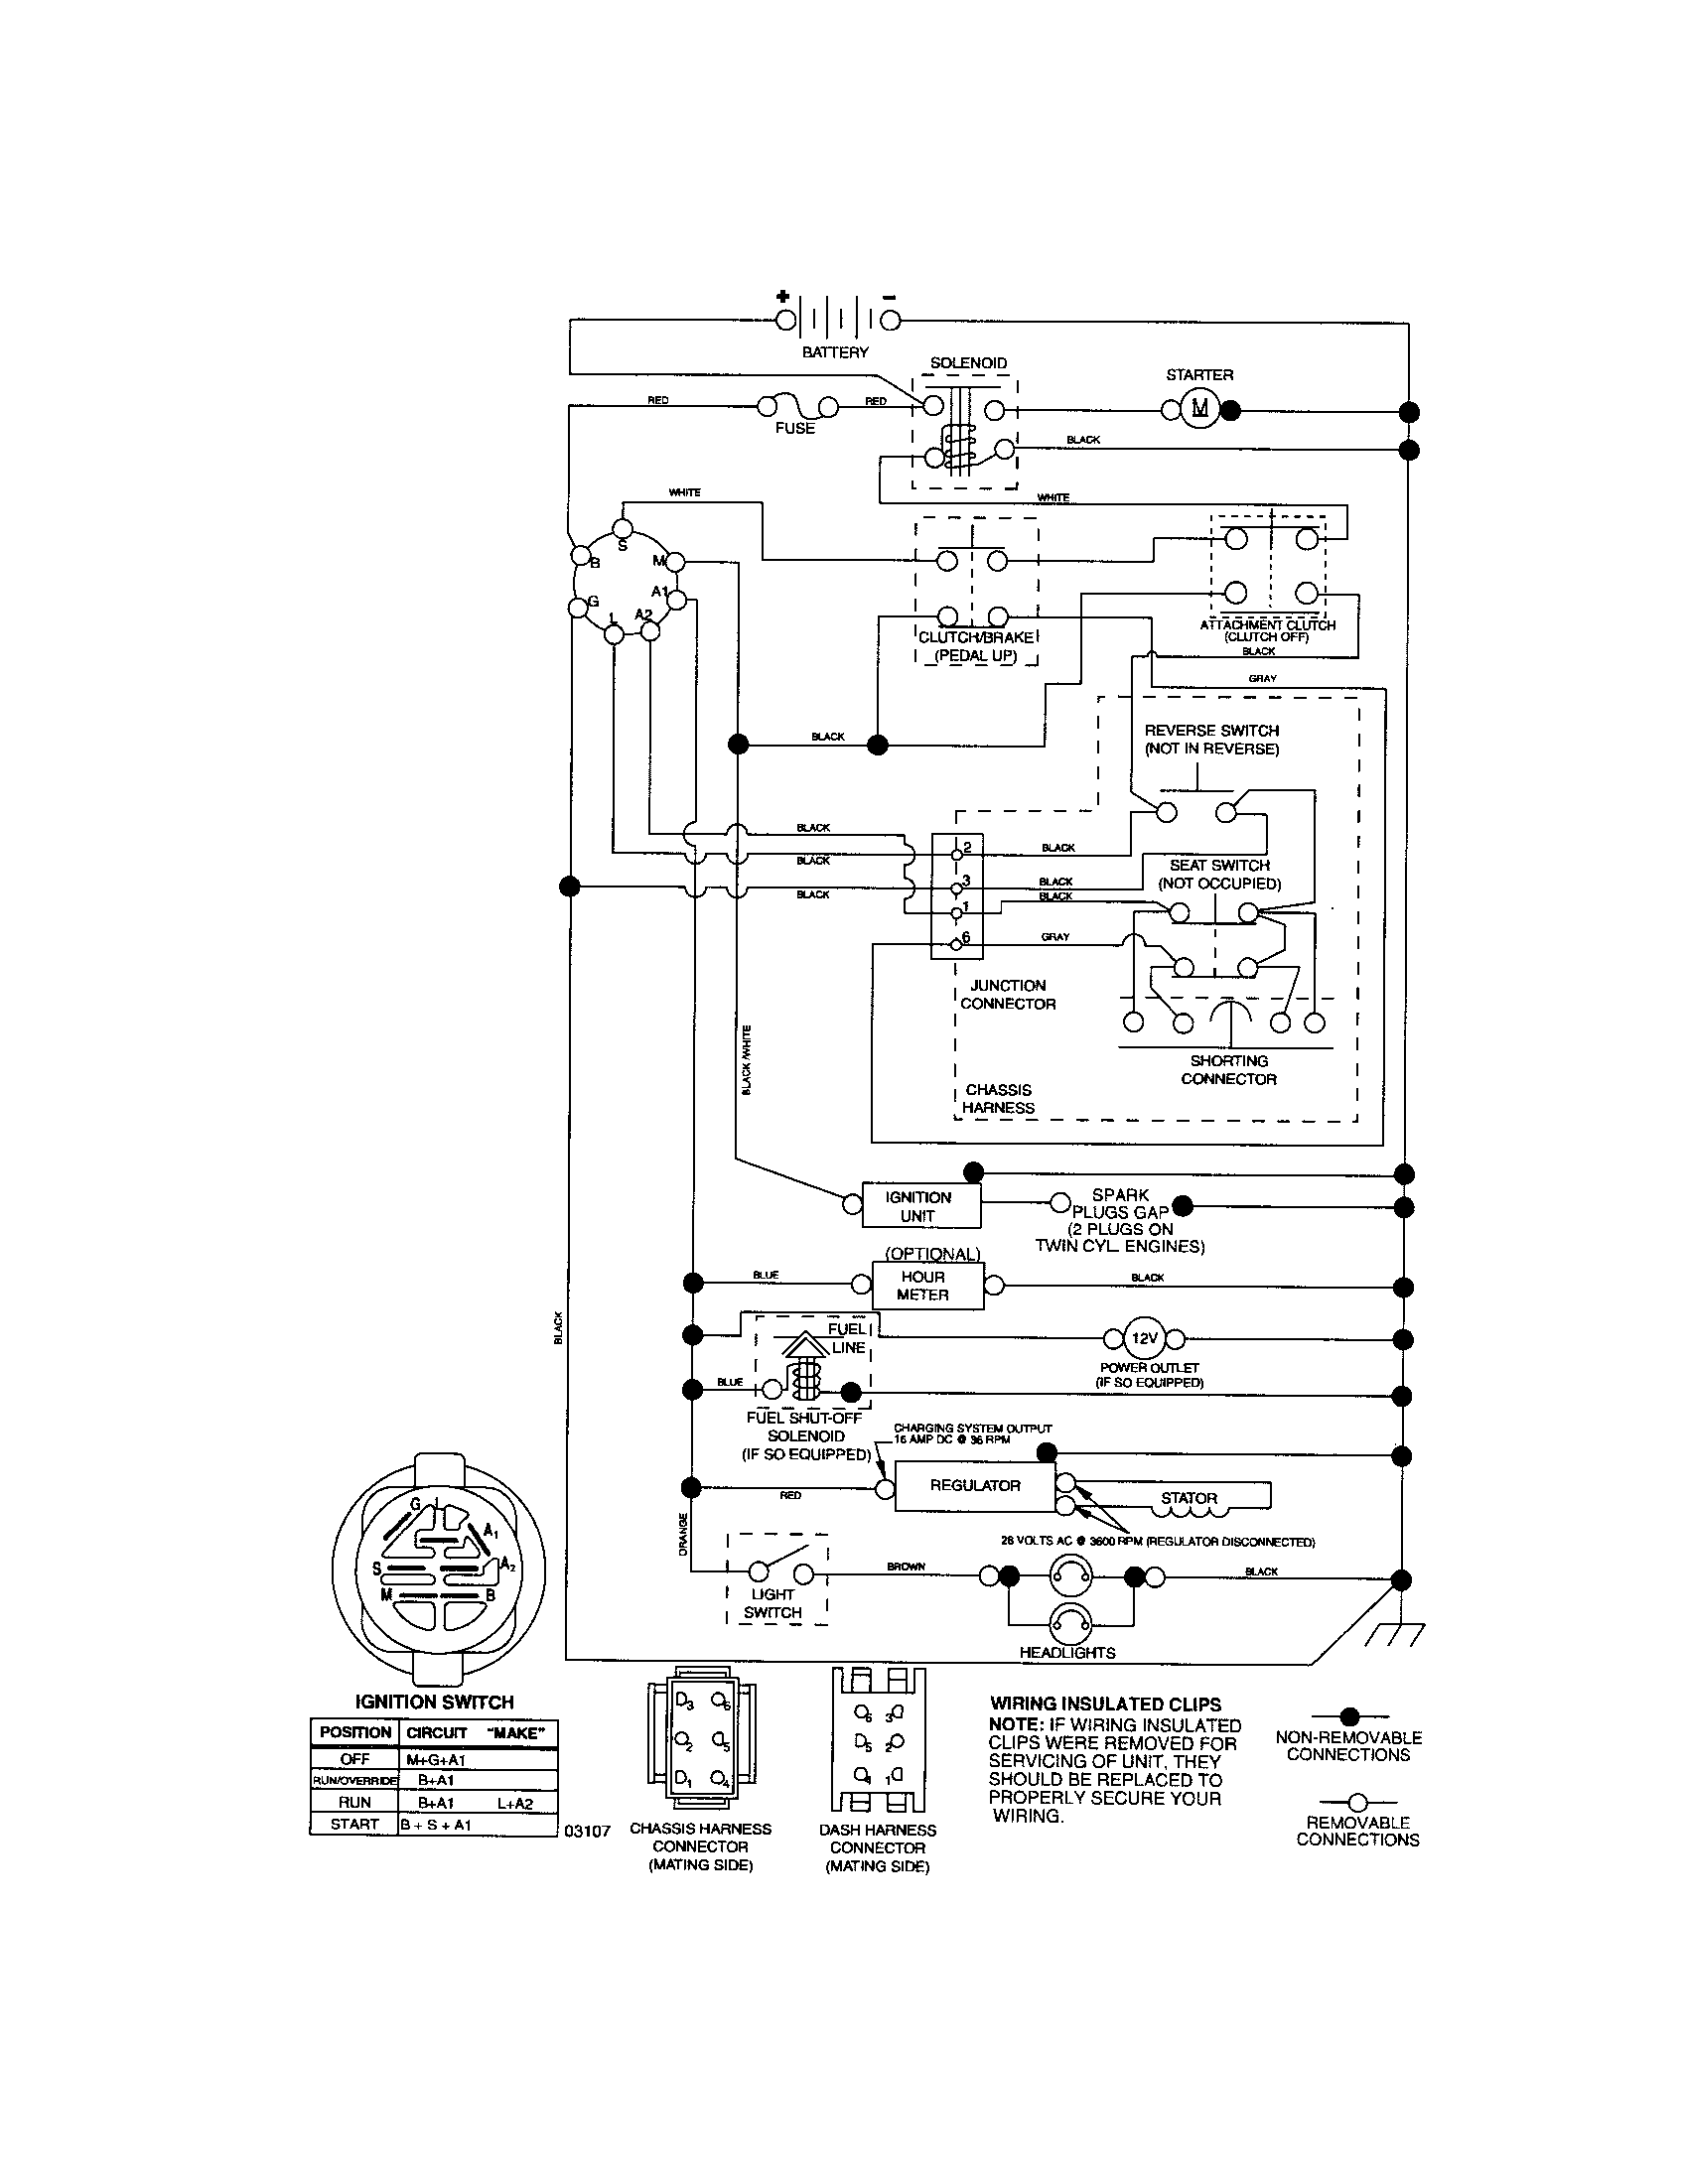 craftsman riding mower electrical diagram wiring diagram Wiring Diagram Craftsman 917.287480